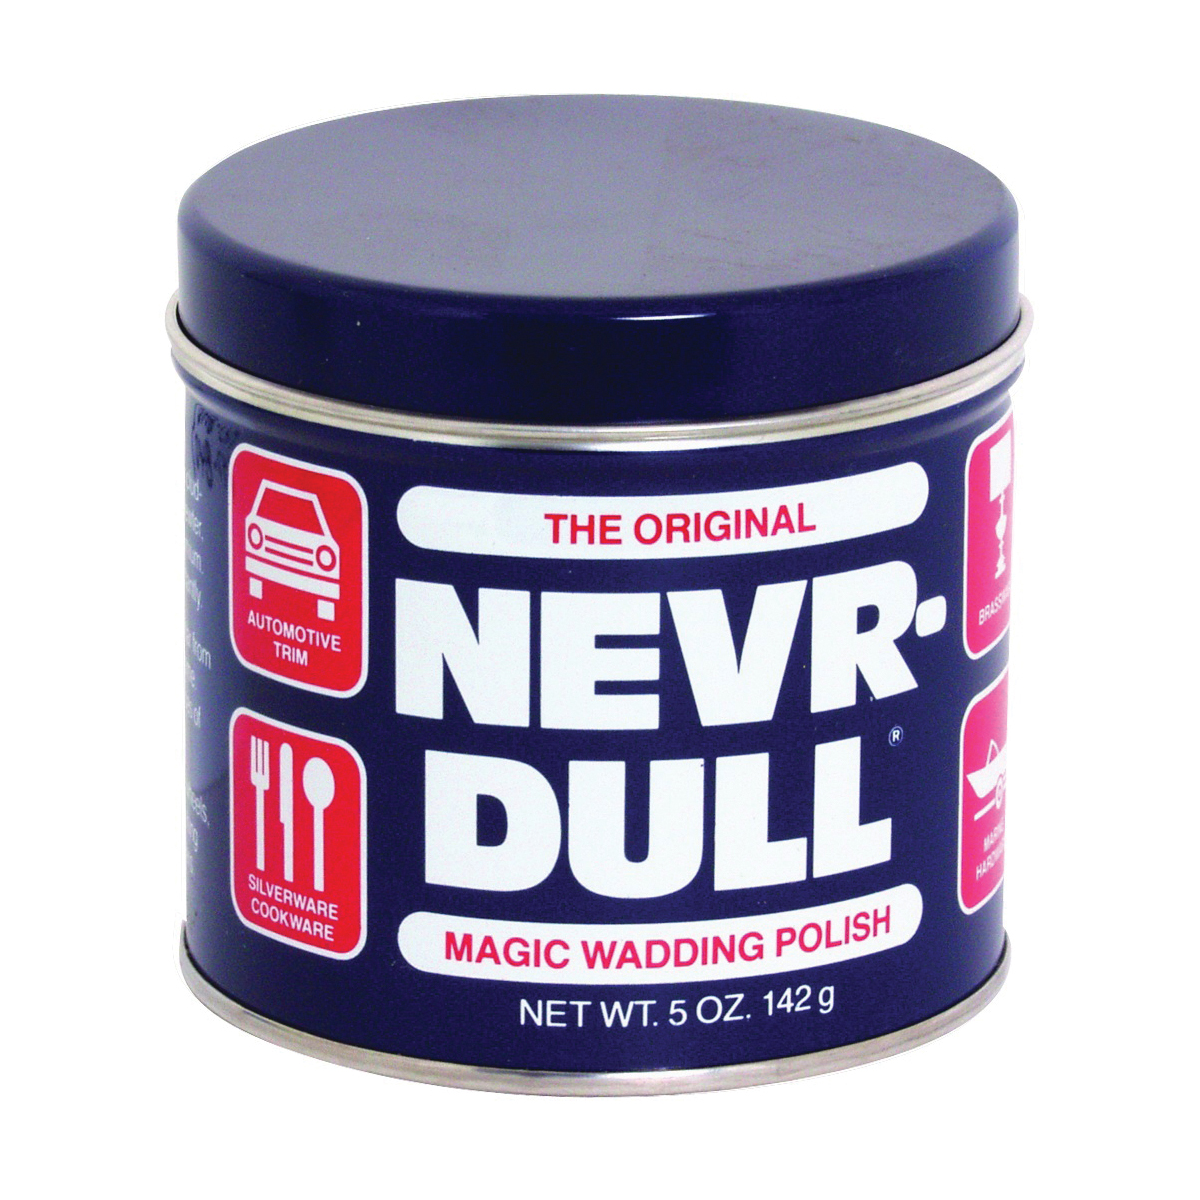 Picture of NEVR-DULL ND-L Wadding Polish, 5 oz Package, Liquid, Cotton Wadding